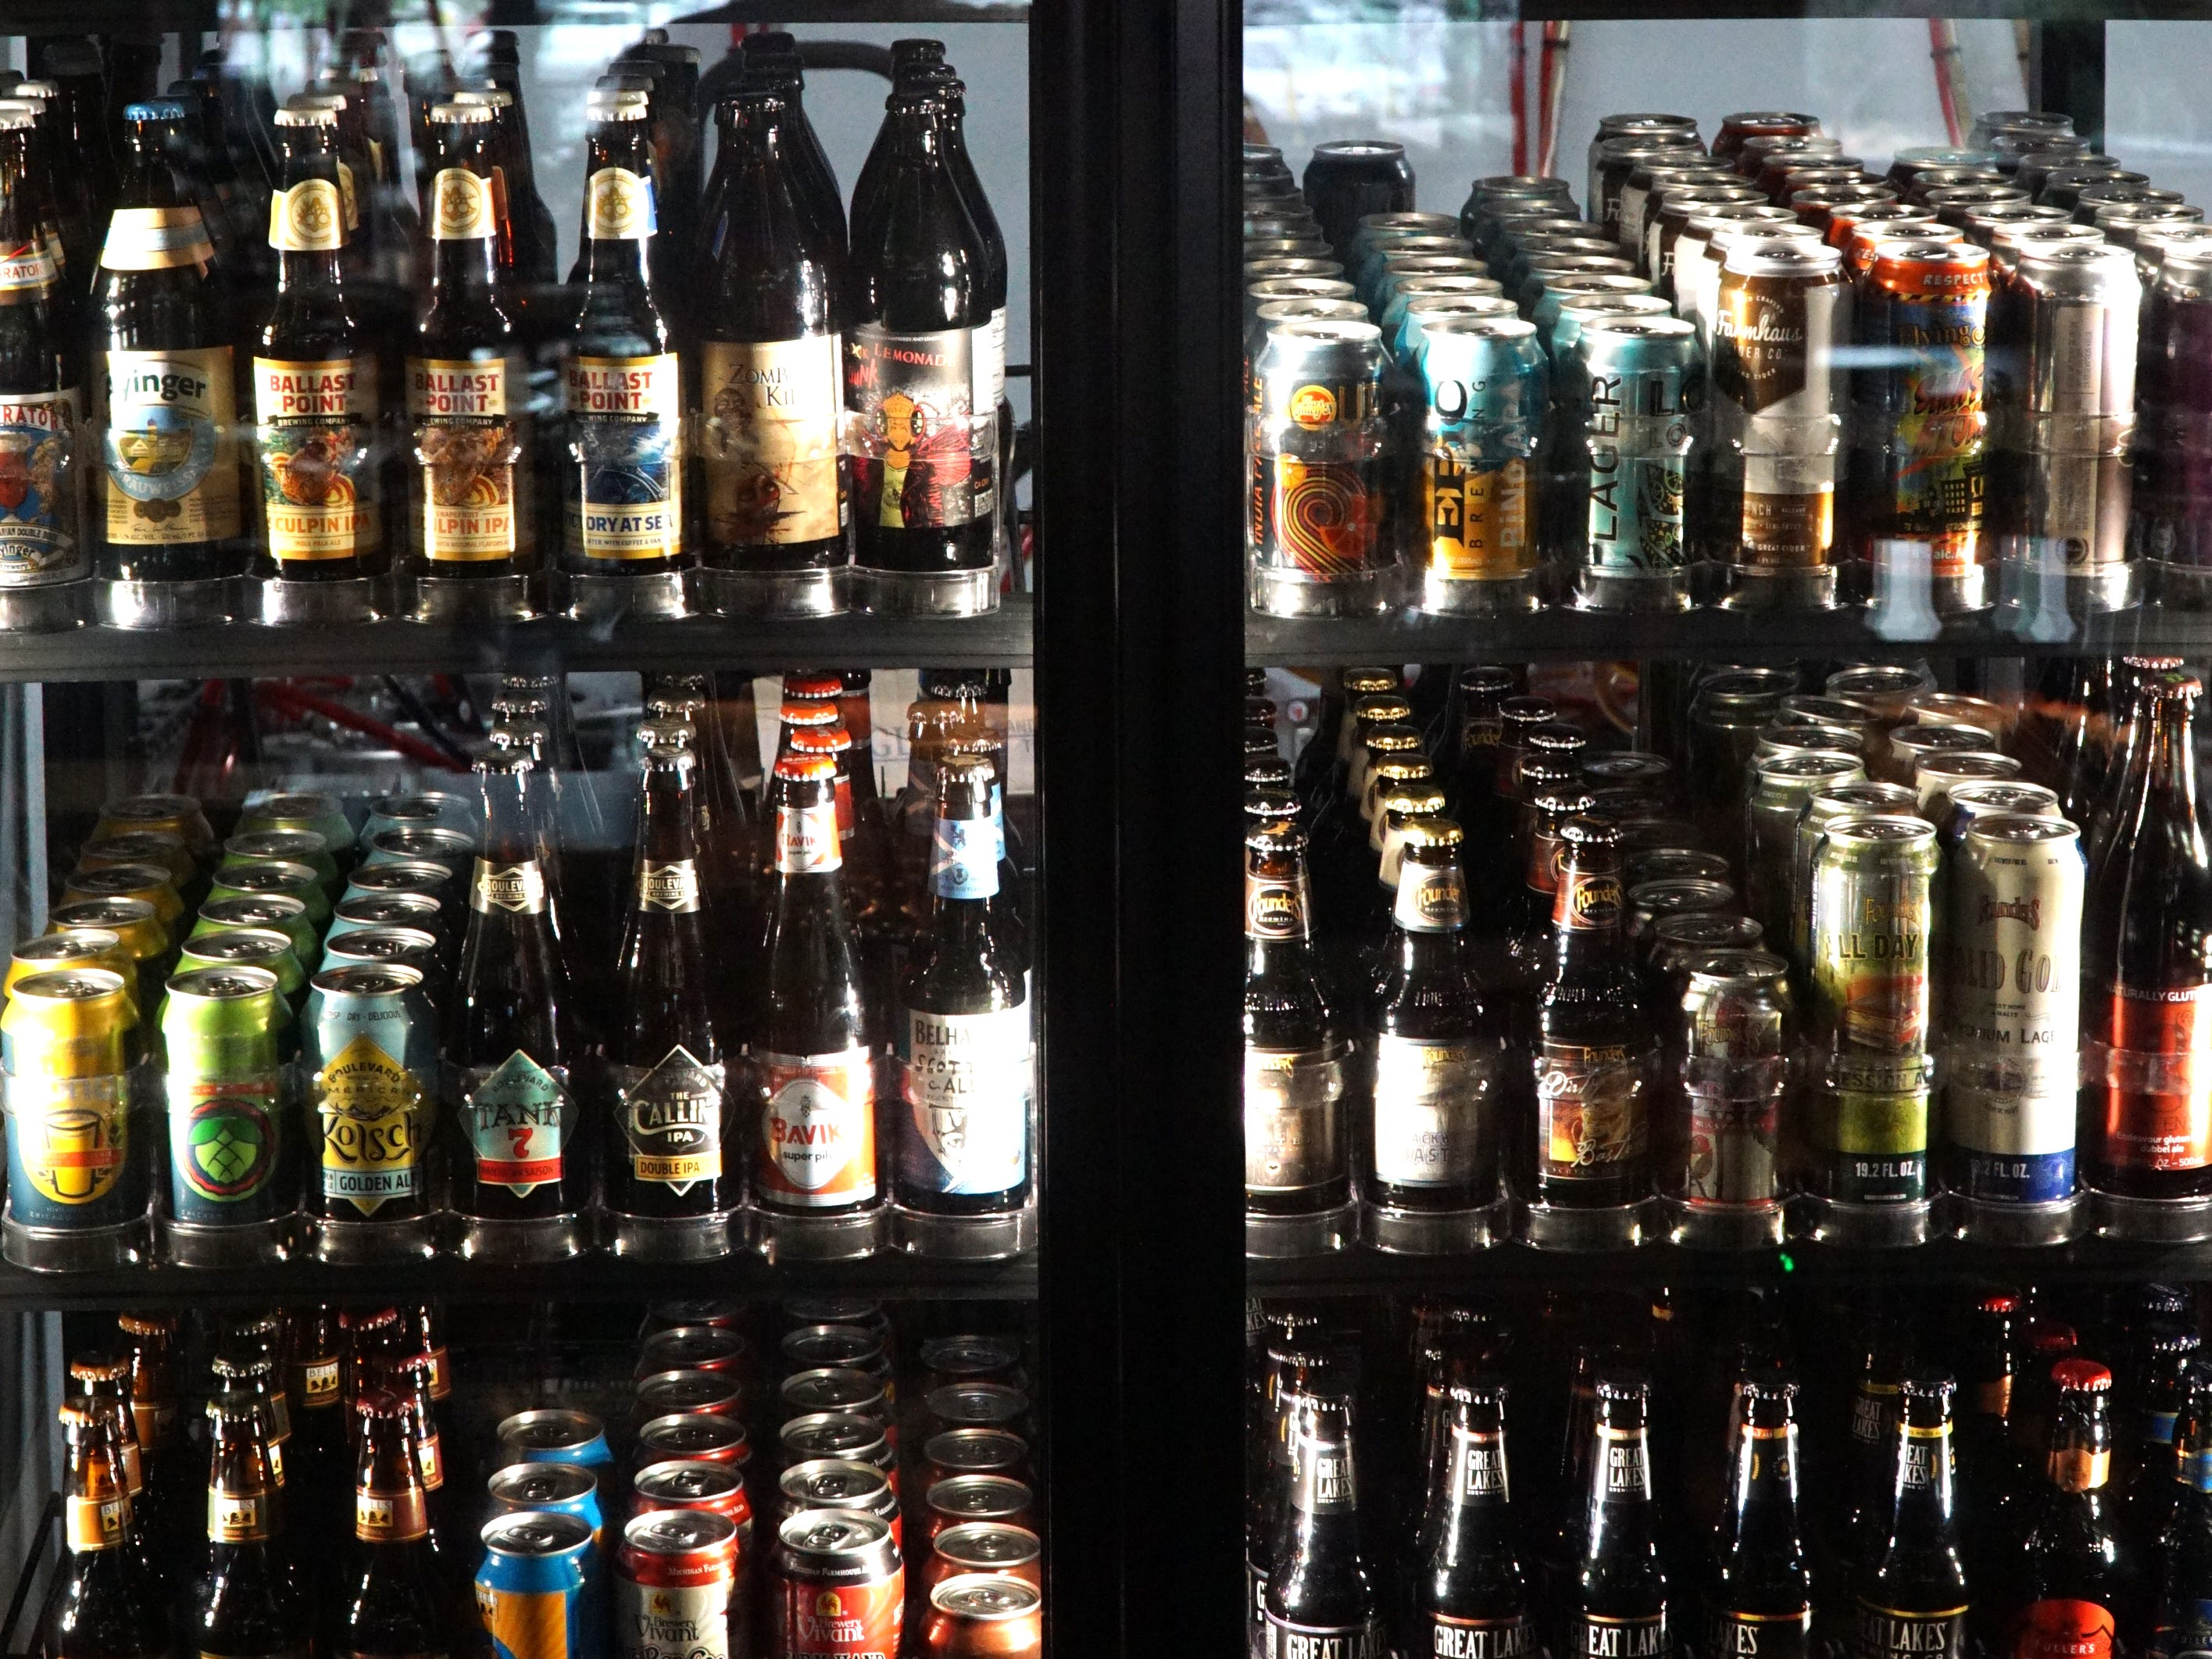 Some of the 200 different varities of beers and ales Sedona Taphouse has in bottles and cans.